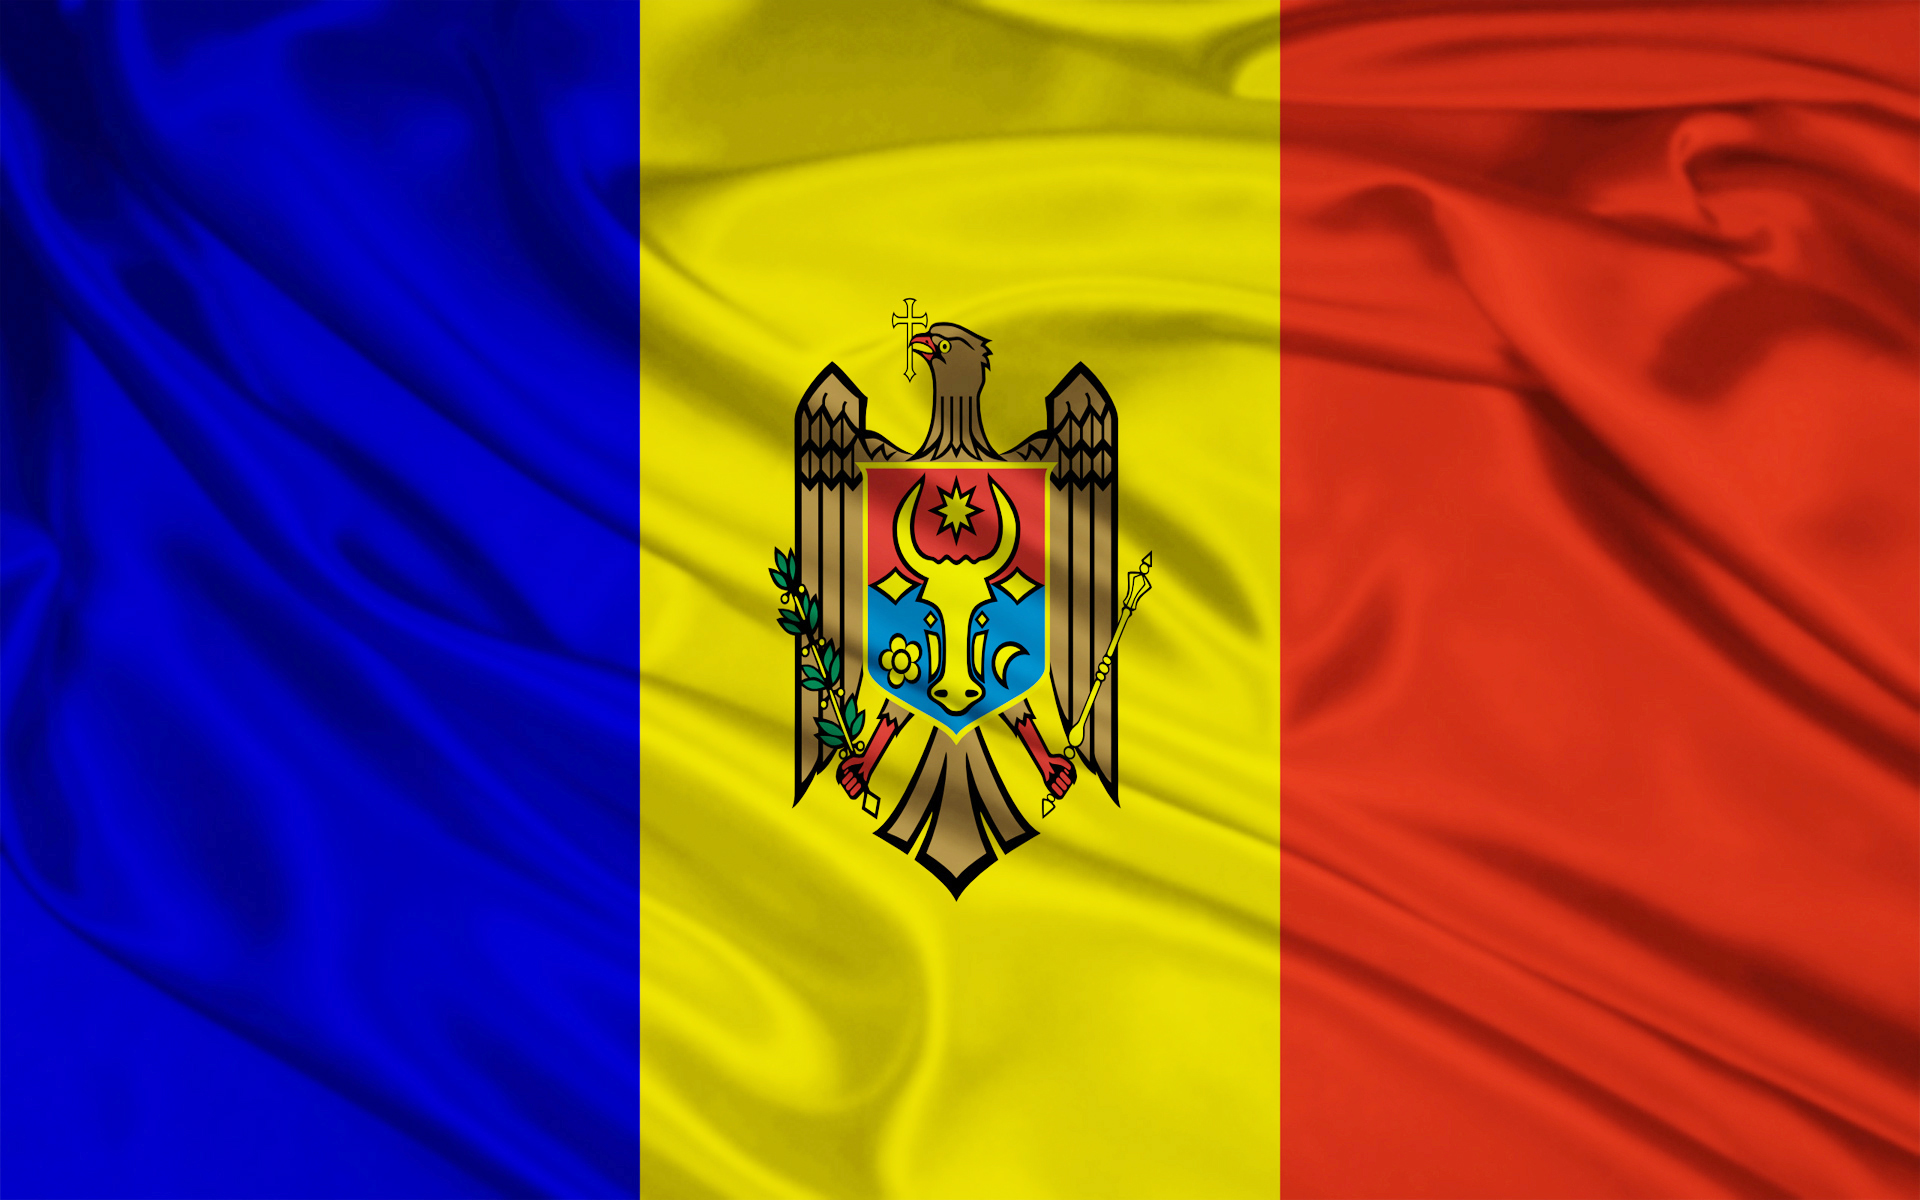 Blue Animated Wallpaper Moldova Flag Wallpapers Moldova Flag Stock Photos